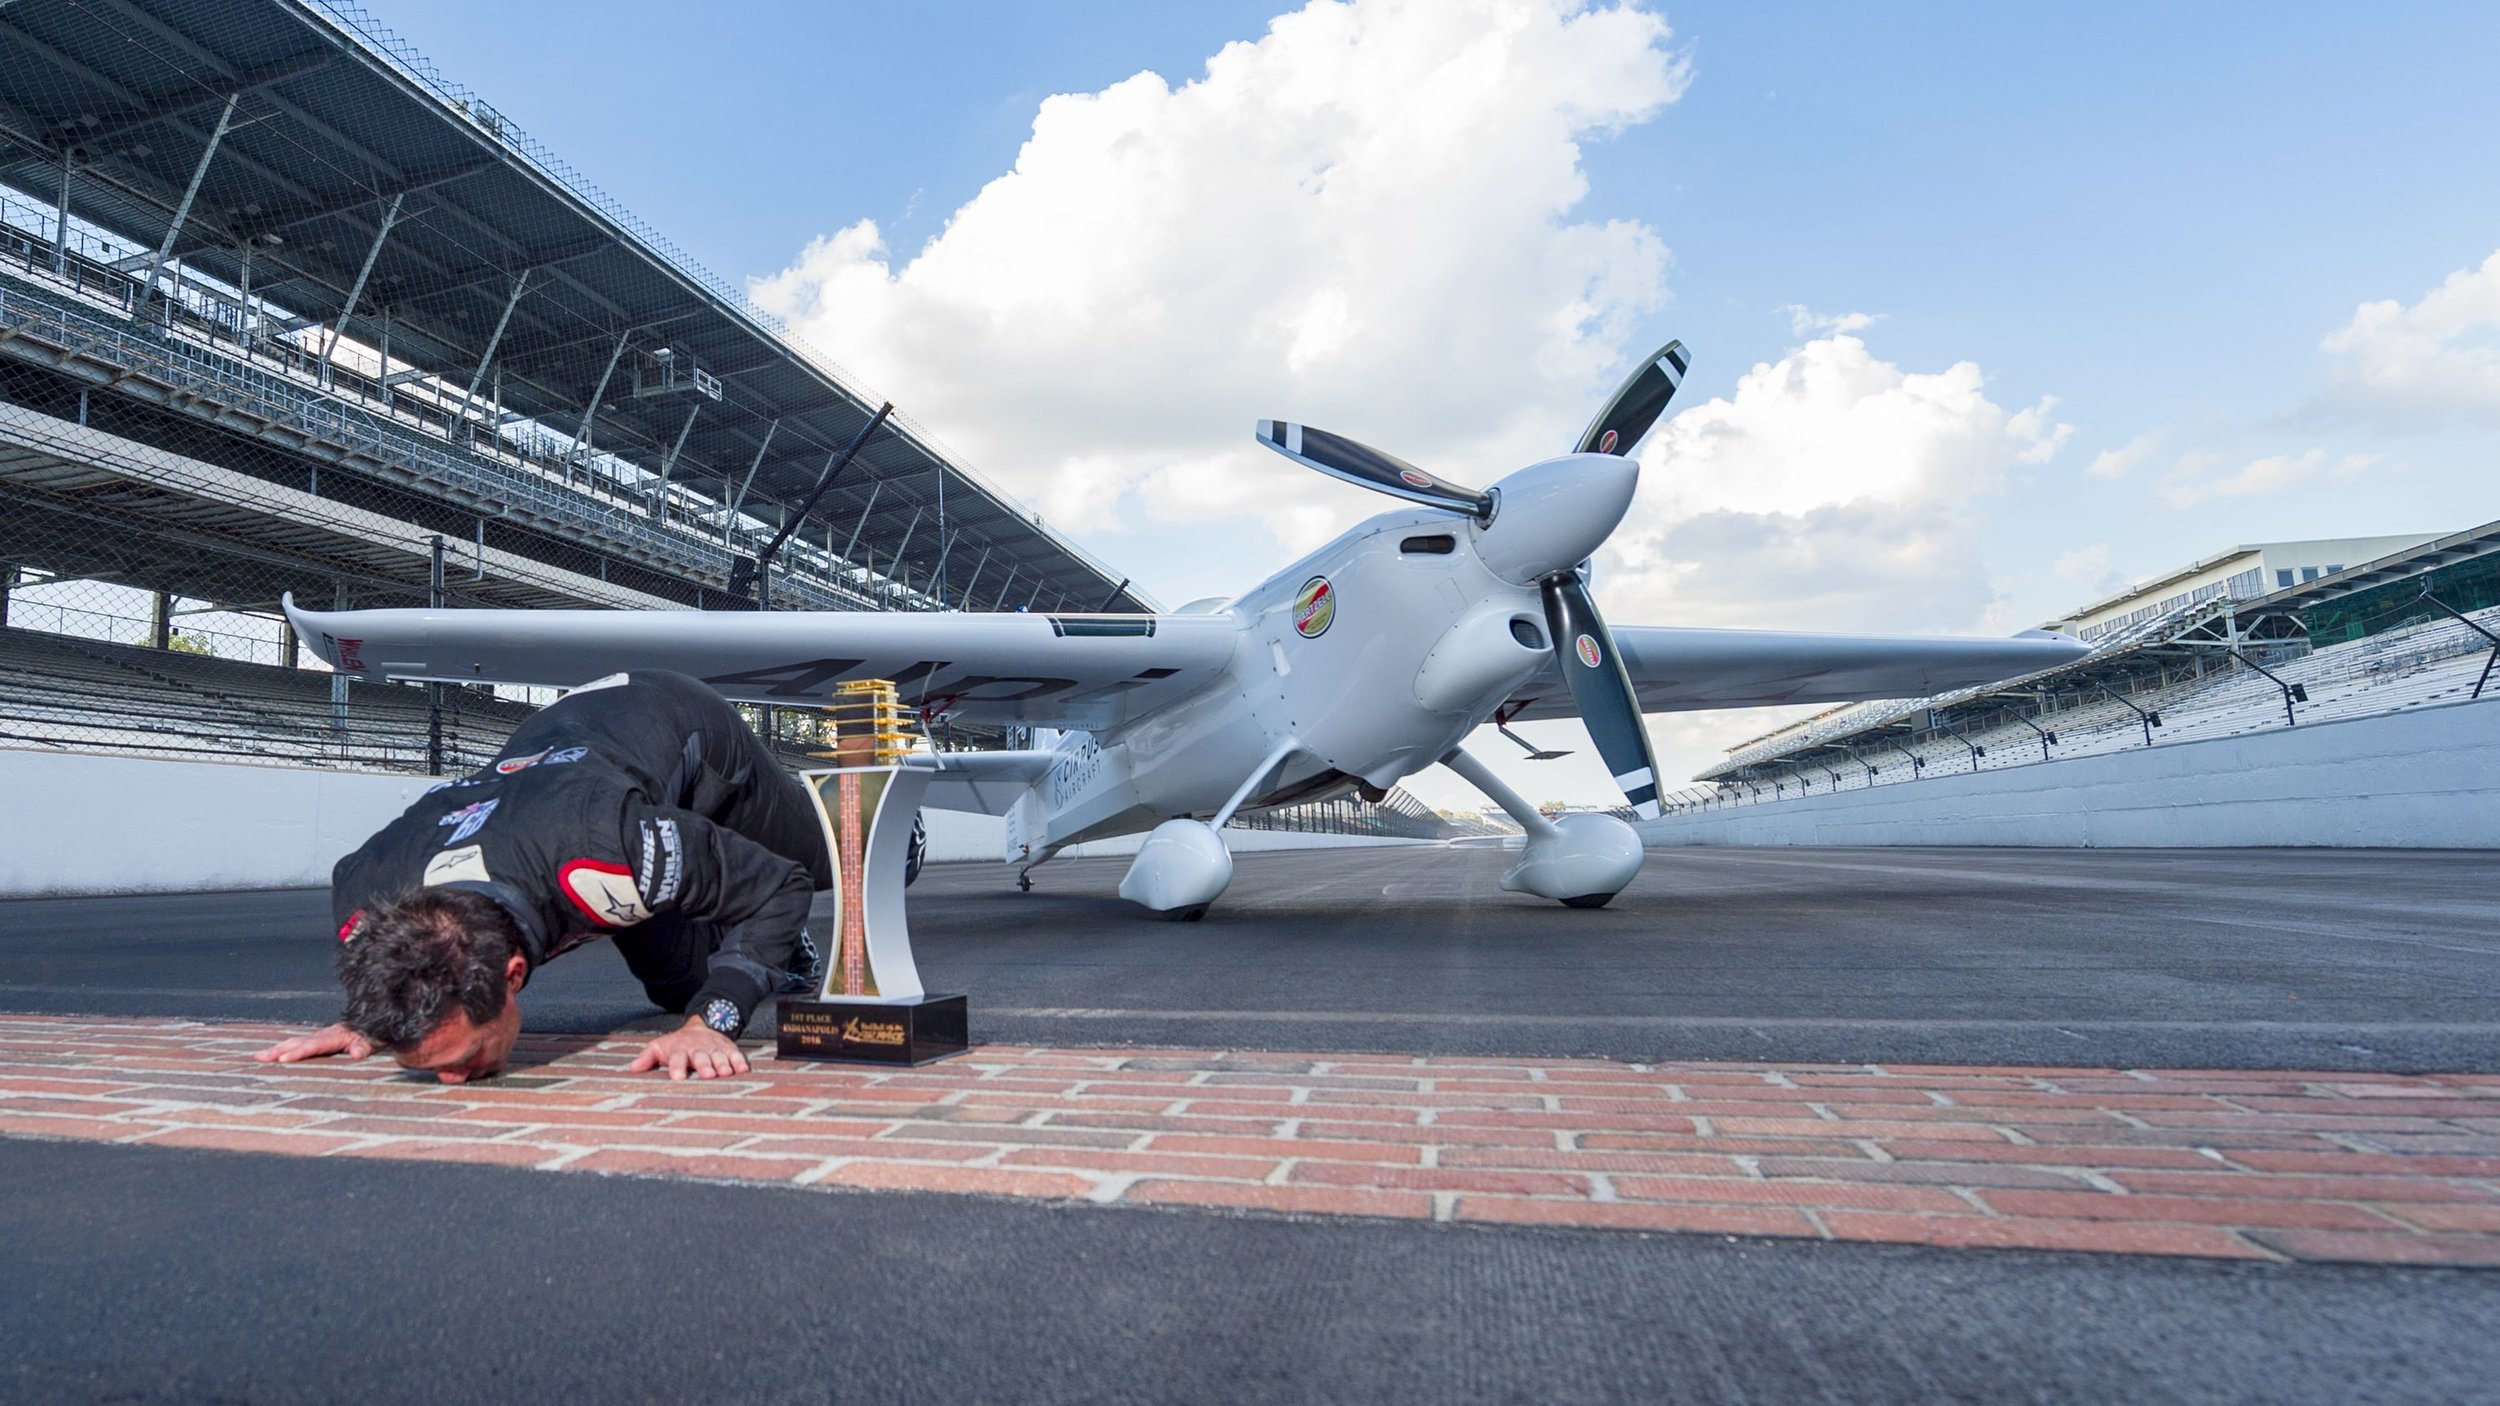 Michael Goulian kisses the bricks at Indianapolis Motor Speedway Following his Red Bull Air Race Win in late 2018.